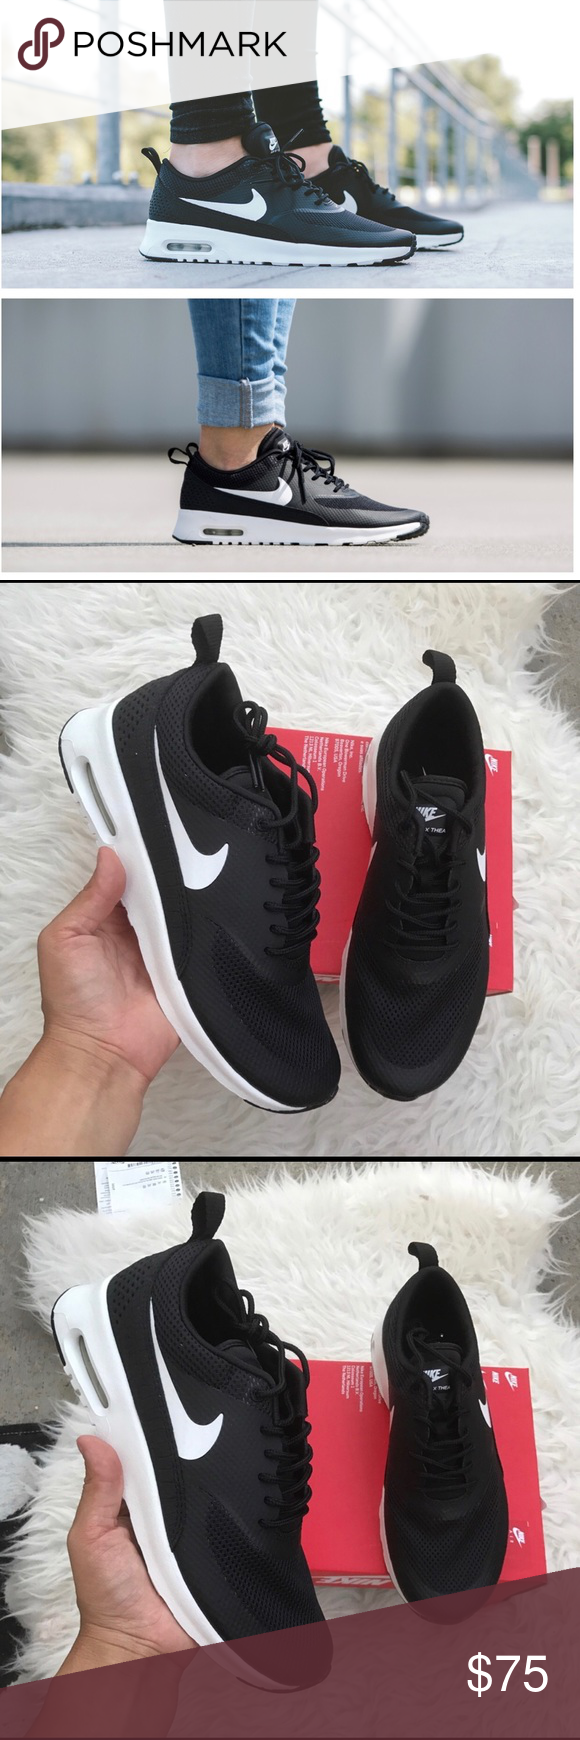 huge selection of cffb0 be4bf NIKE AUTHENTIC WOMENS AIR MAX SZ 7,8,8.5 New NIKE AUTHENTIC WOMENS AIR MAX  SZ 7,8,8.5 New 100% authentic! Itm cudo Nike Shoes